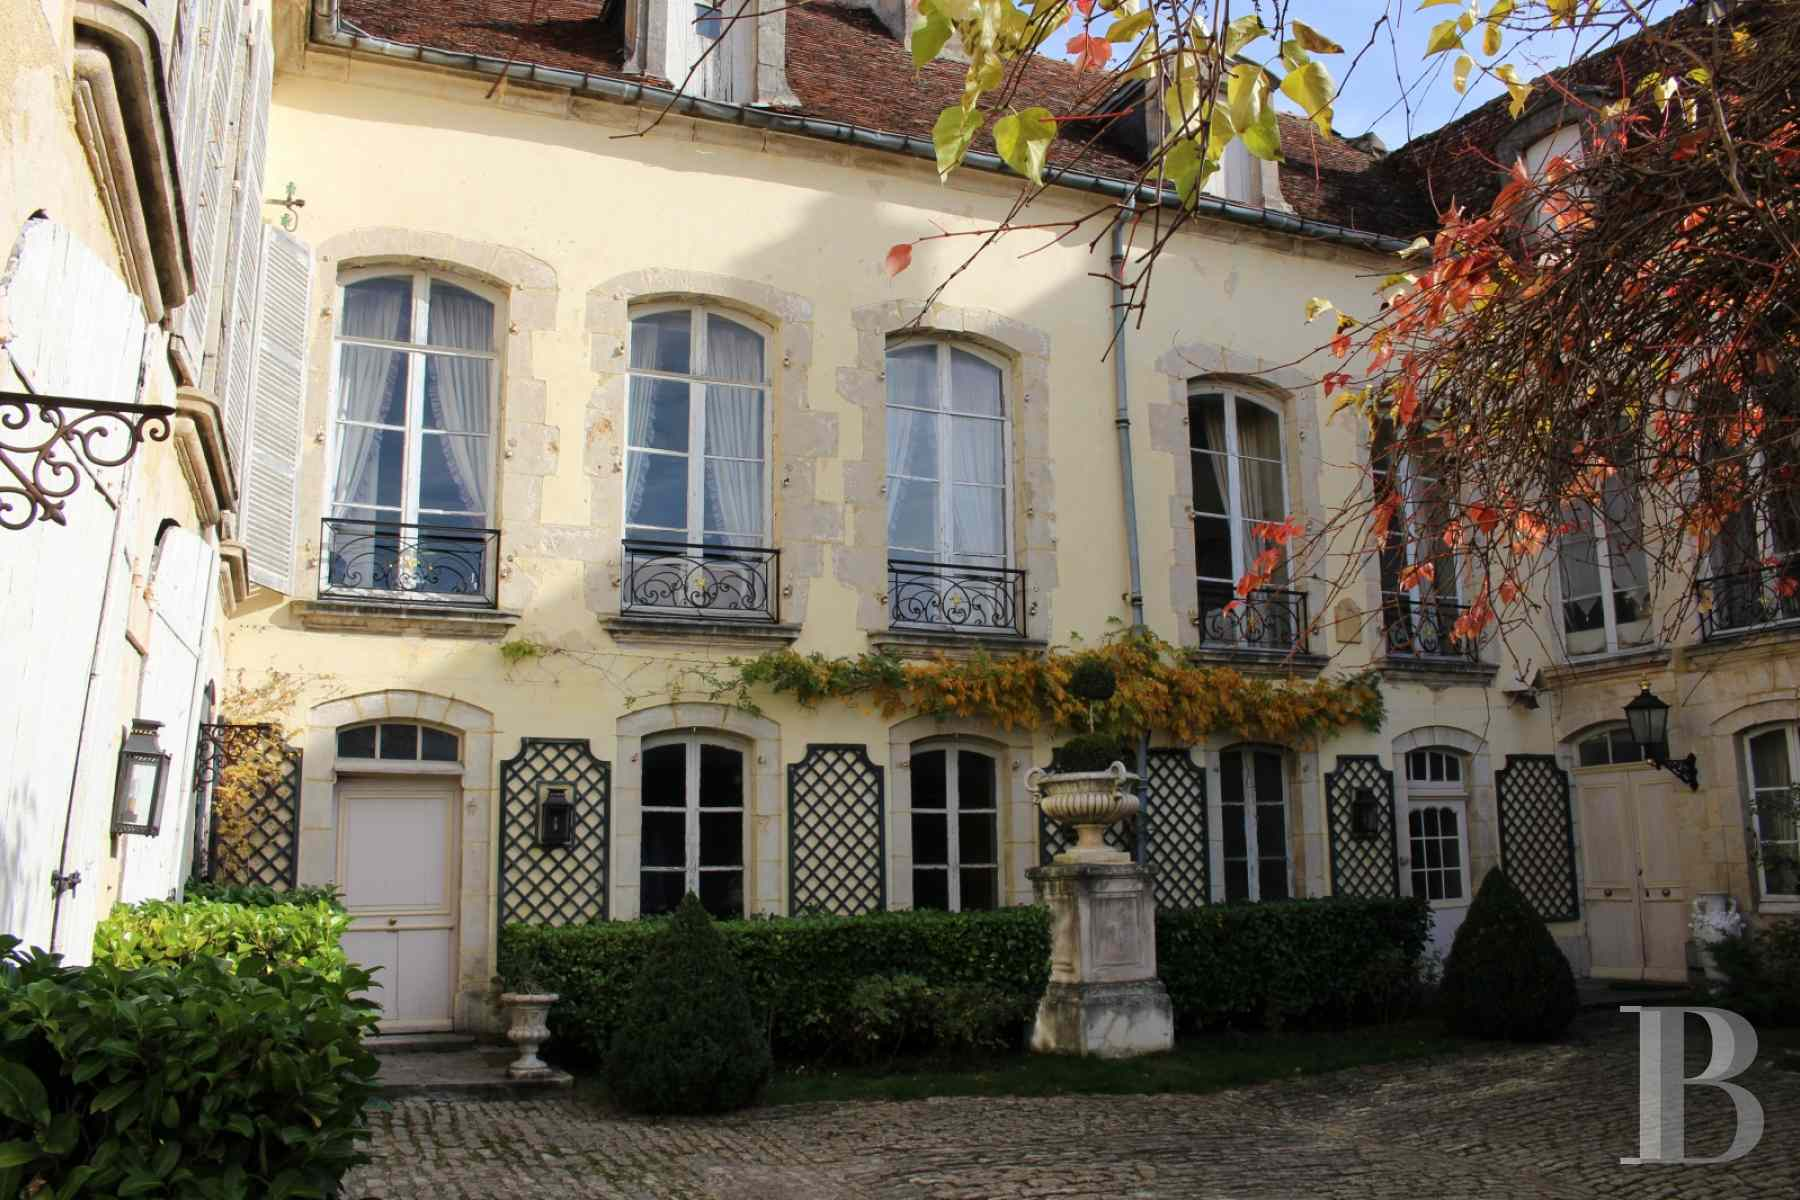 mansion houses for sale France burgundy 18th century - 1 zoom